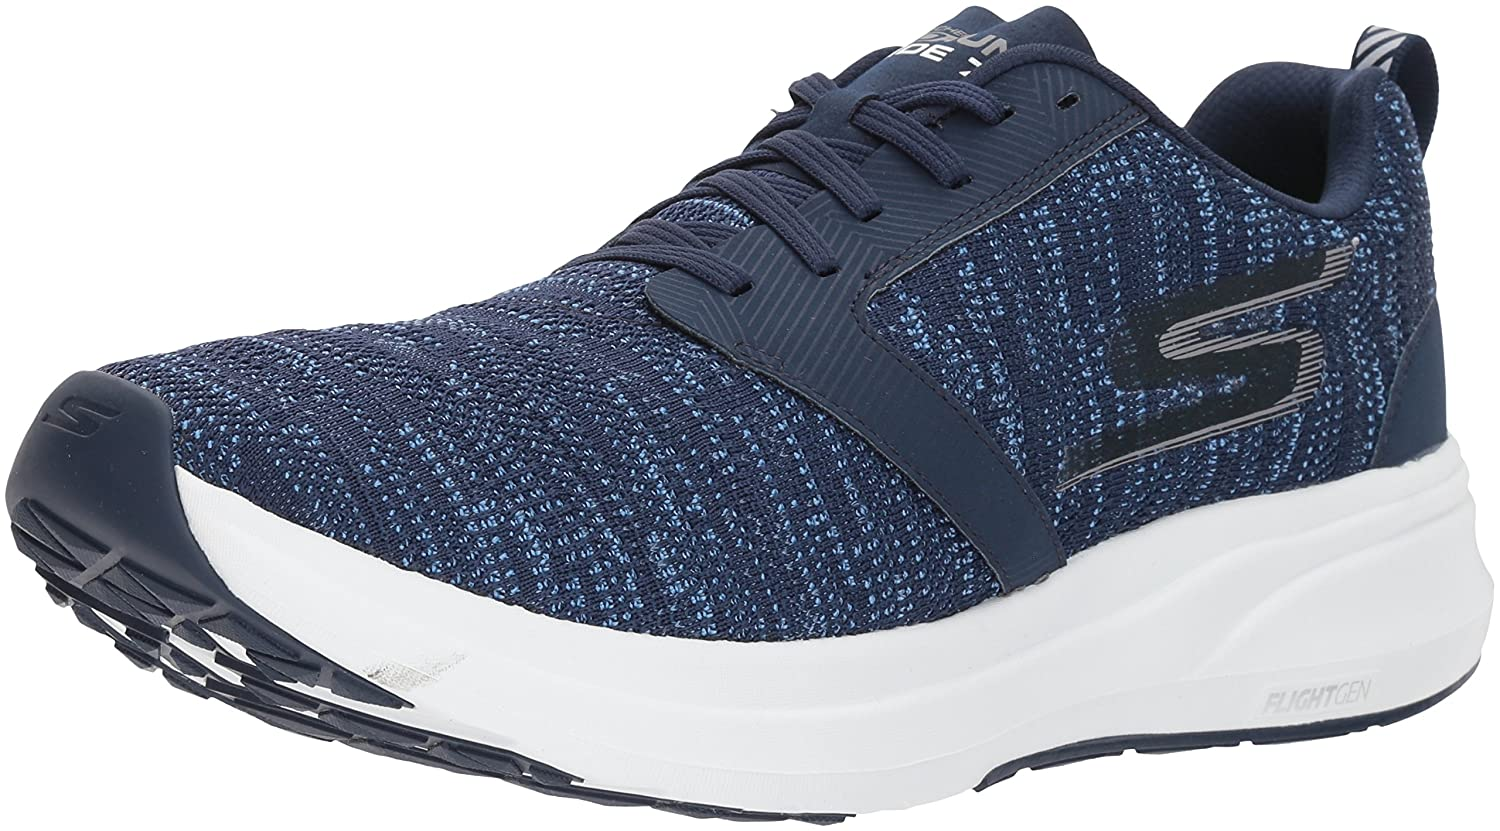 Skechers Men's Go Ride 7 Running Shoe B073GJ8P9N 8.5 D(M) US|Navy